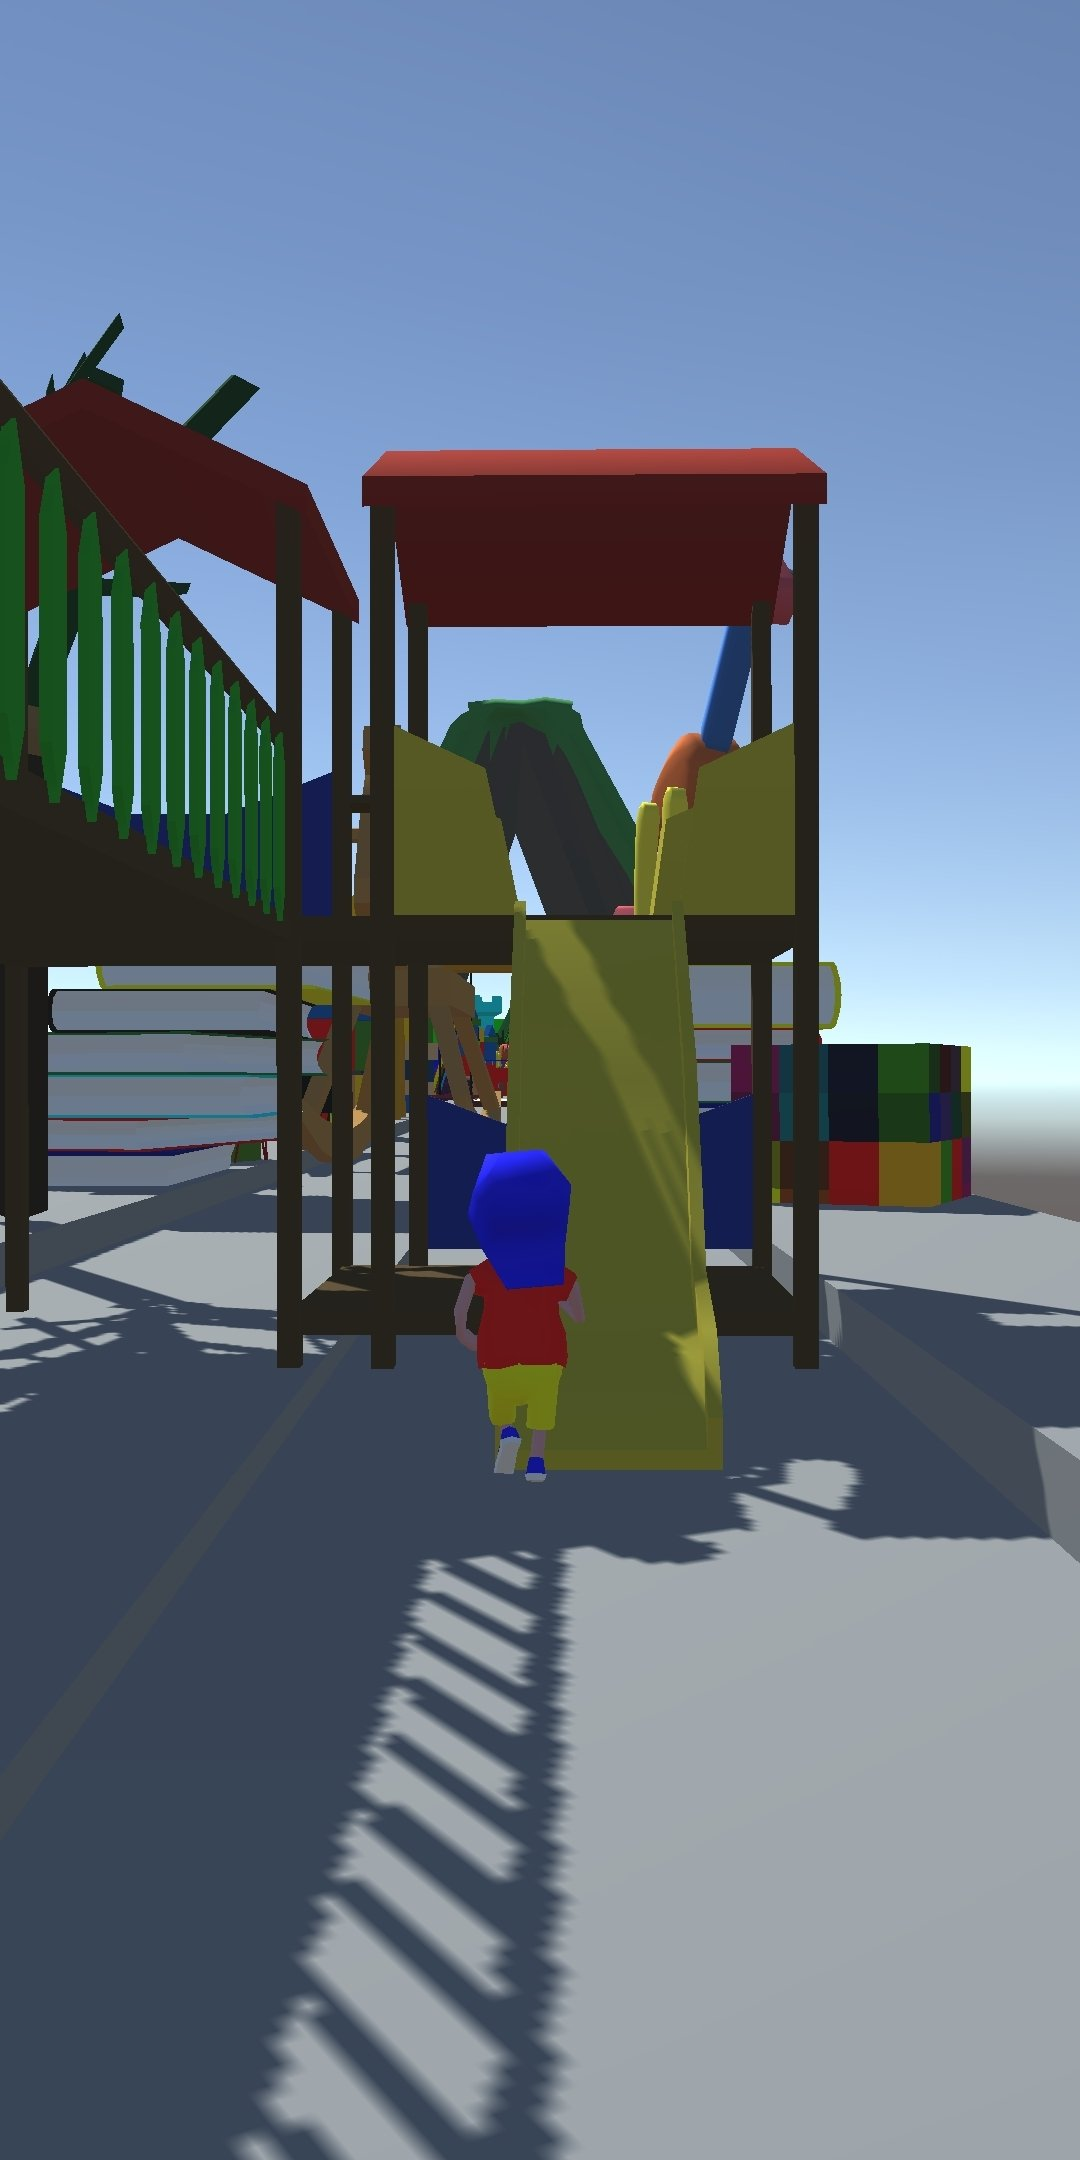 A screenshot from the parkour-based game.